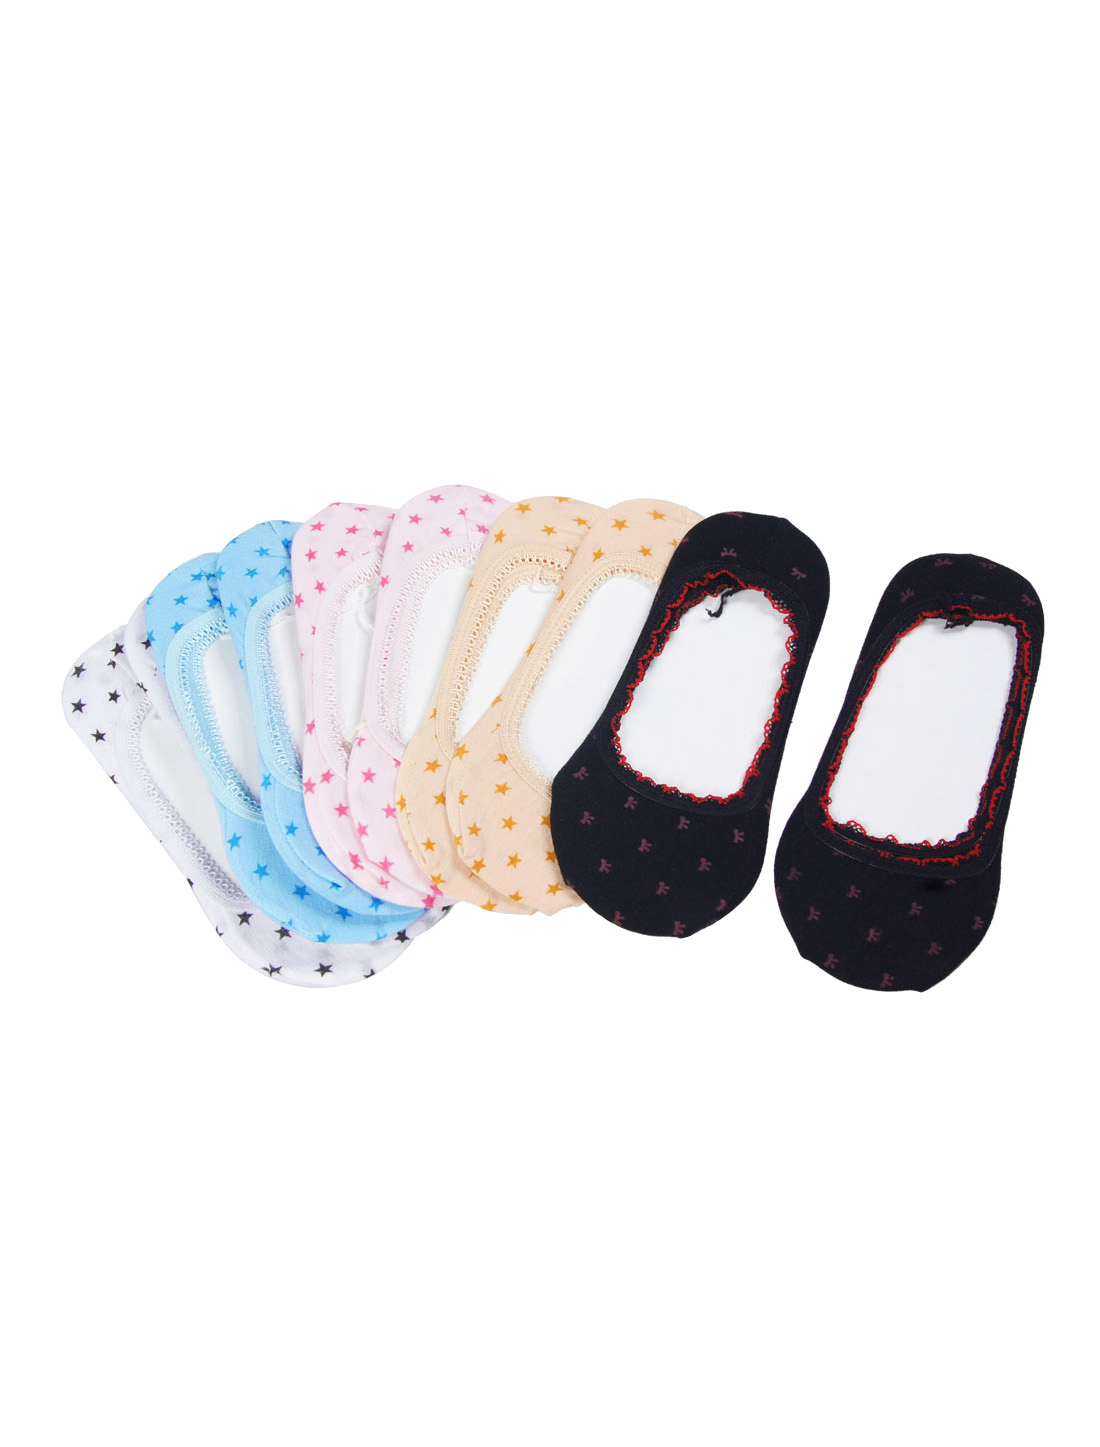 Lady Colorful Low Ankle Elastic Stars White Boat Socks 10 Pairs